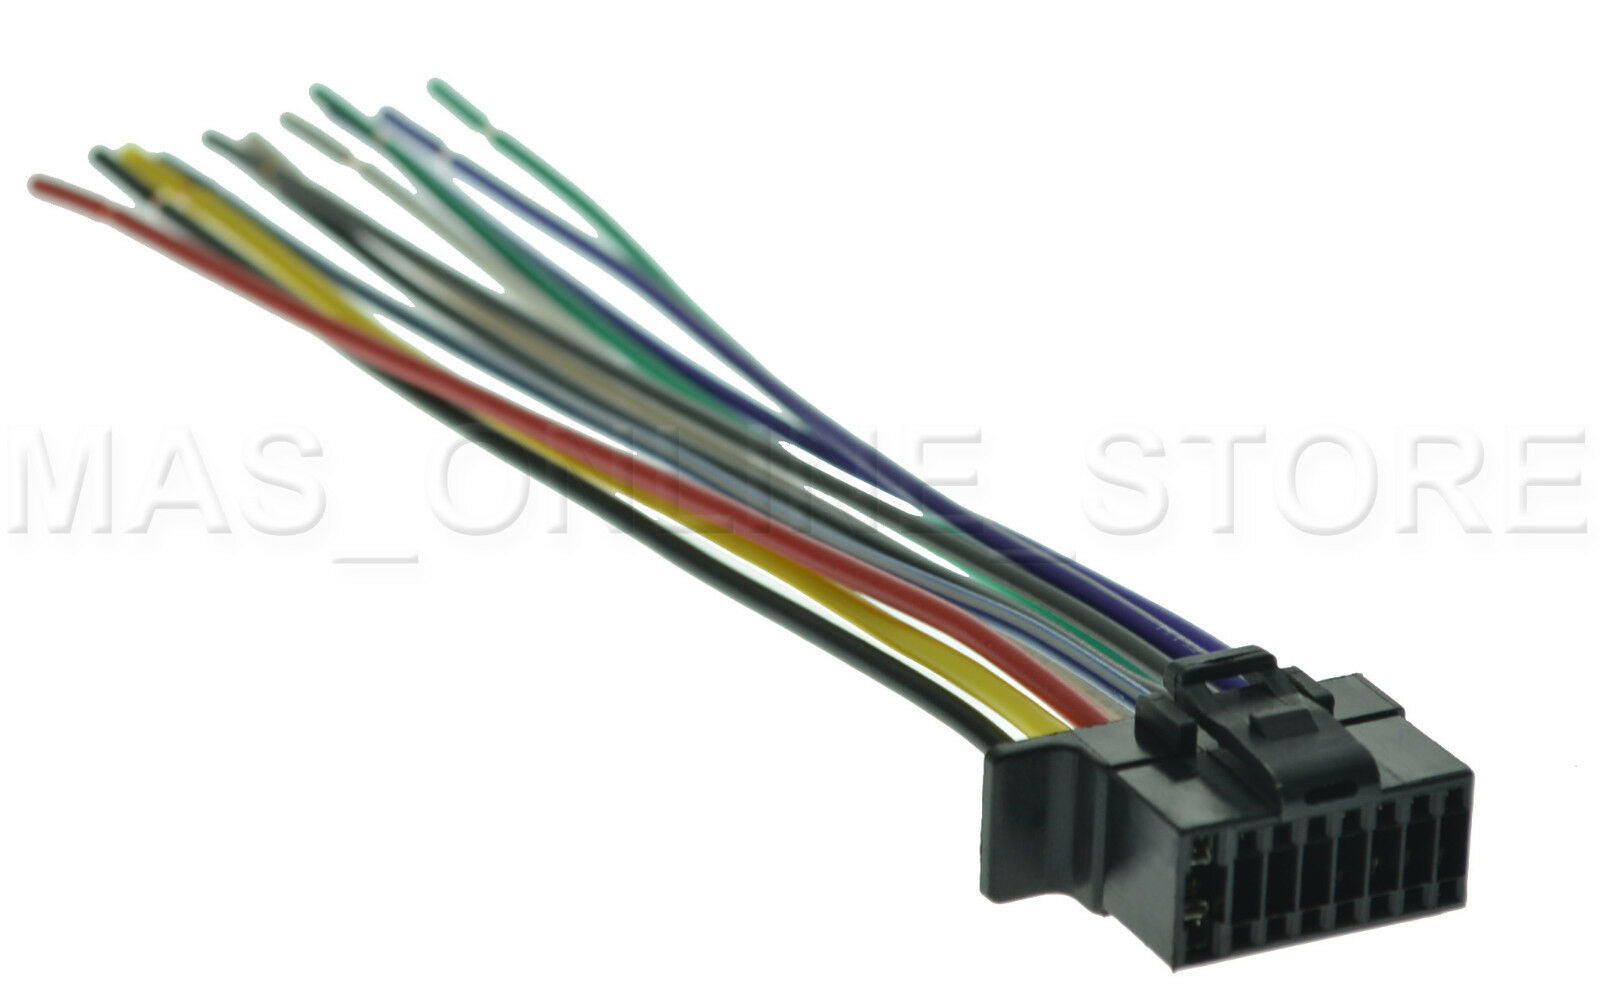 s l1600 wire harness for sony mexn5100bt mex n5100bt *pays today ships Wire Harness Assembly at reclaimingppi.co